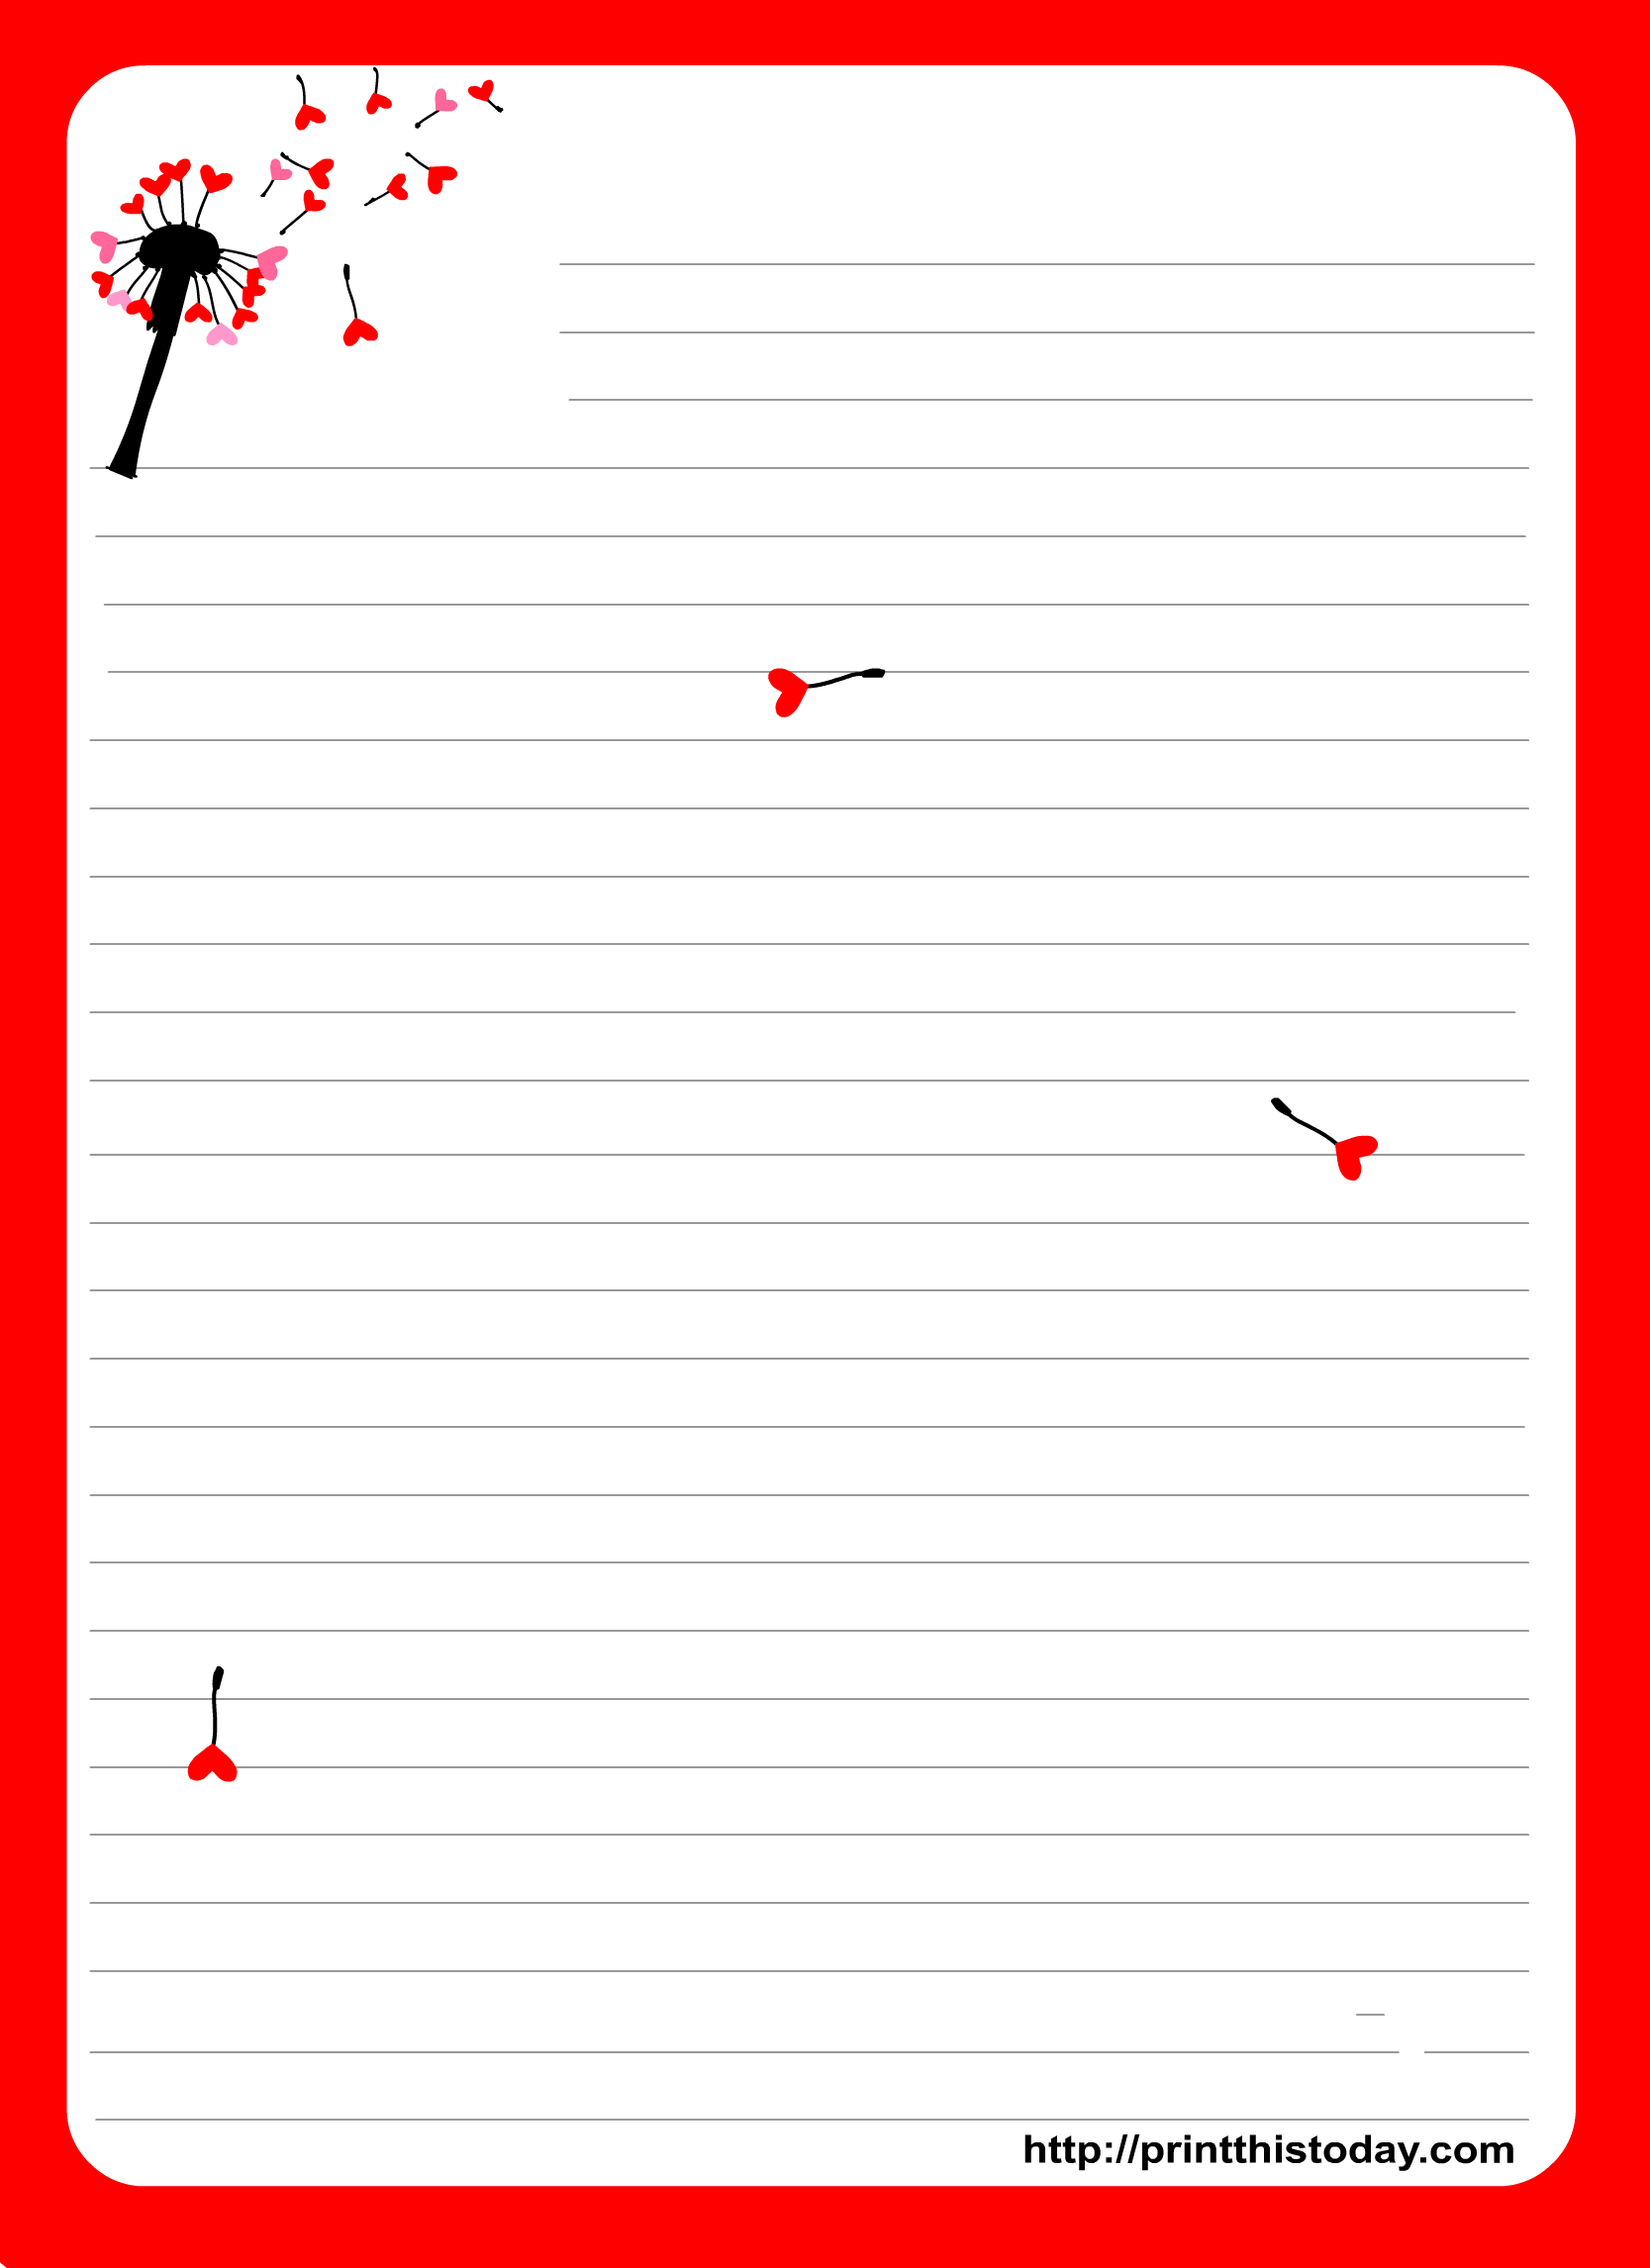 This Is An Adorable Love Letter Pad Stationery Design Which Has